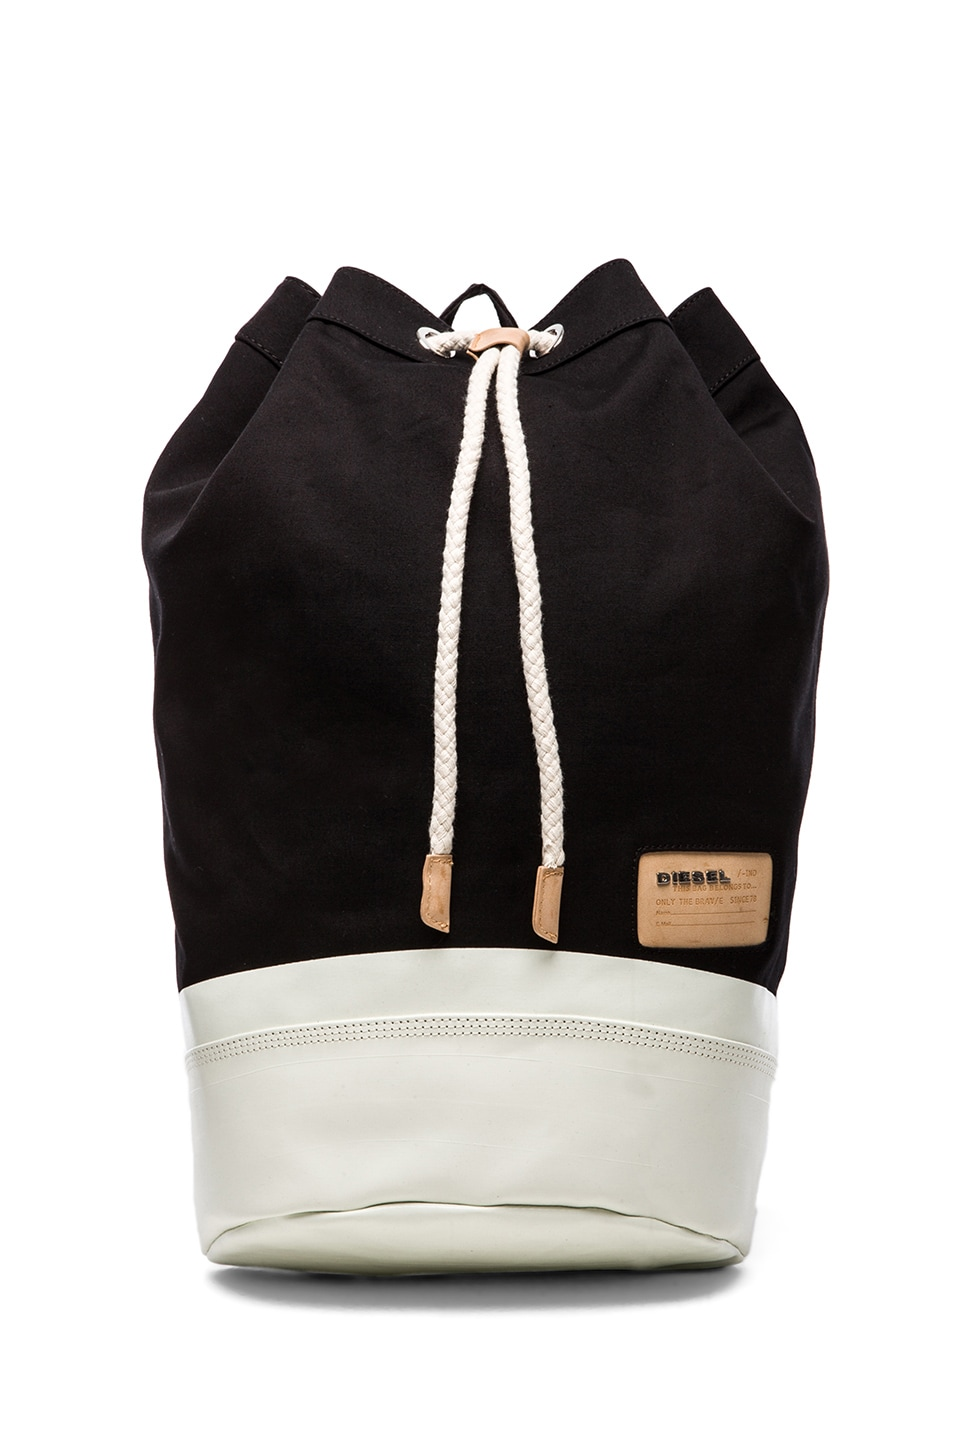 Diesel Stripe & Sand Shore Backpack in Black & Bright White